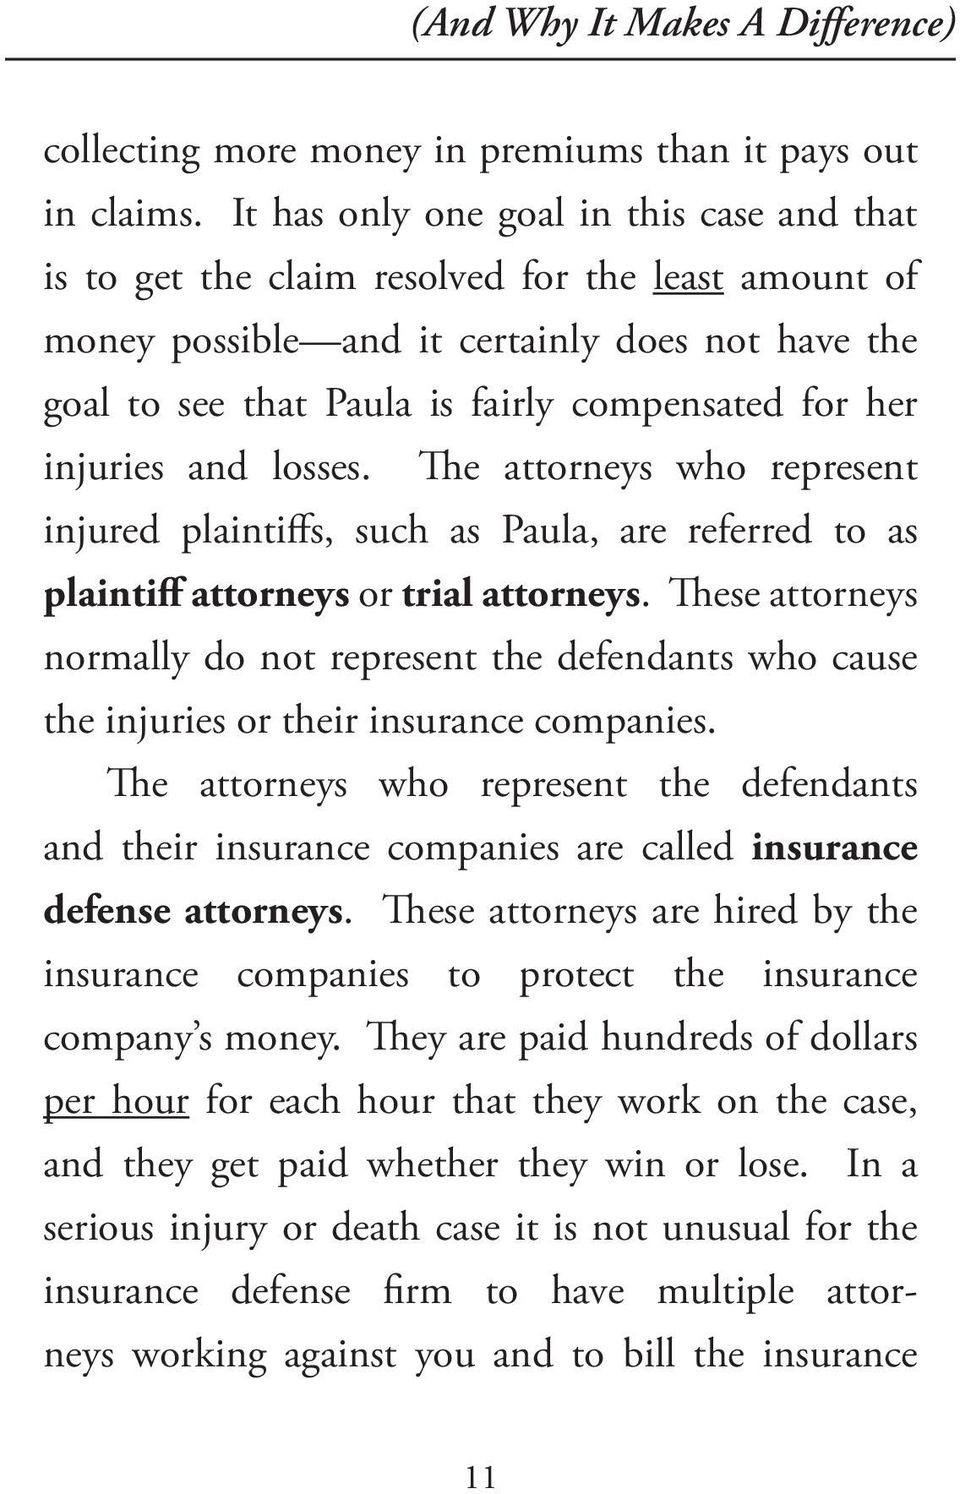 injuries and losses. The attorneys who represent injured plaintiffs, such as Paula, are referred to as plaintiff attorneys or trial attorneys.